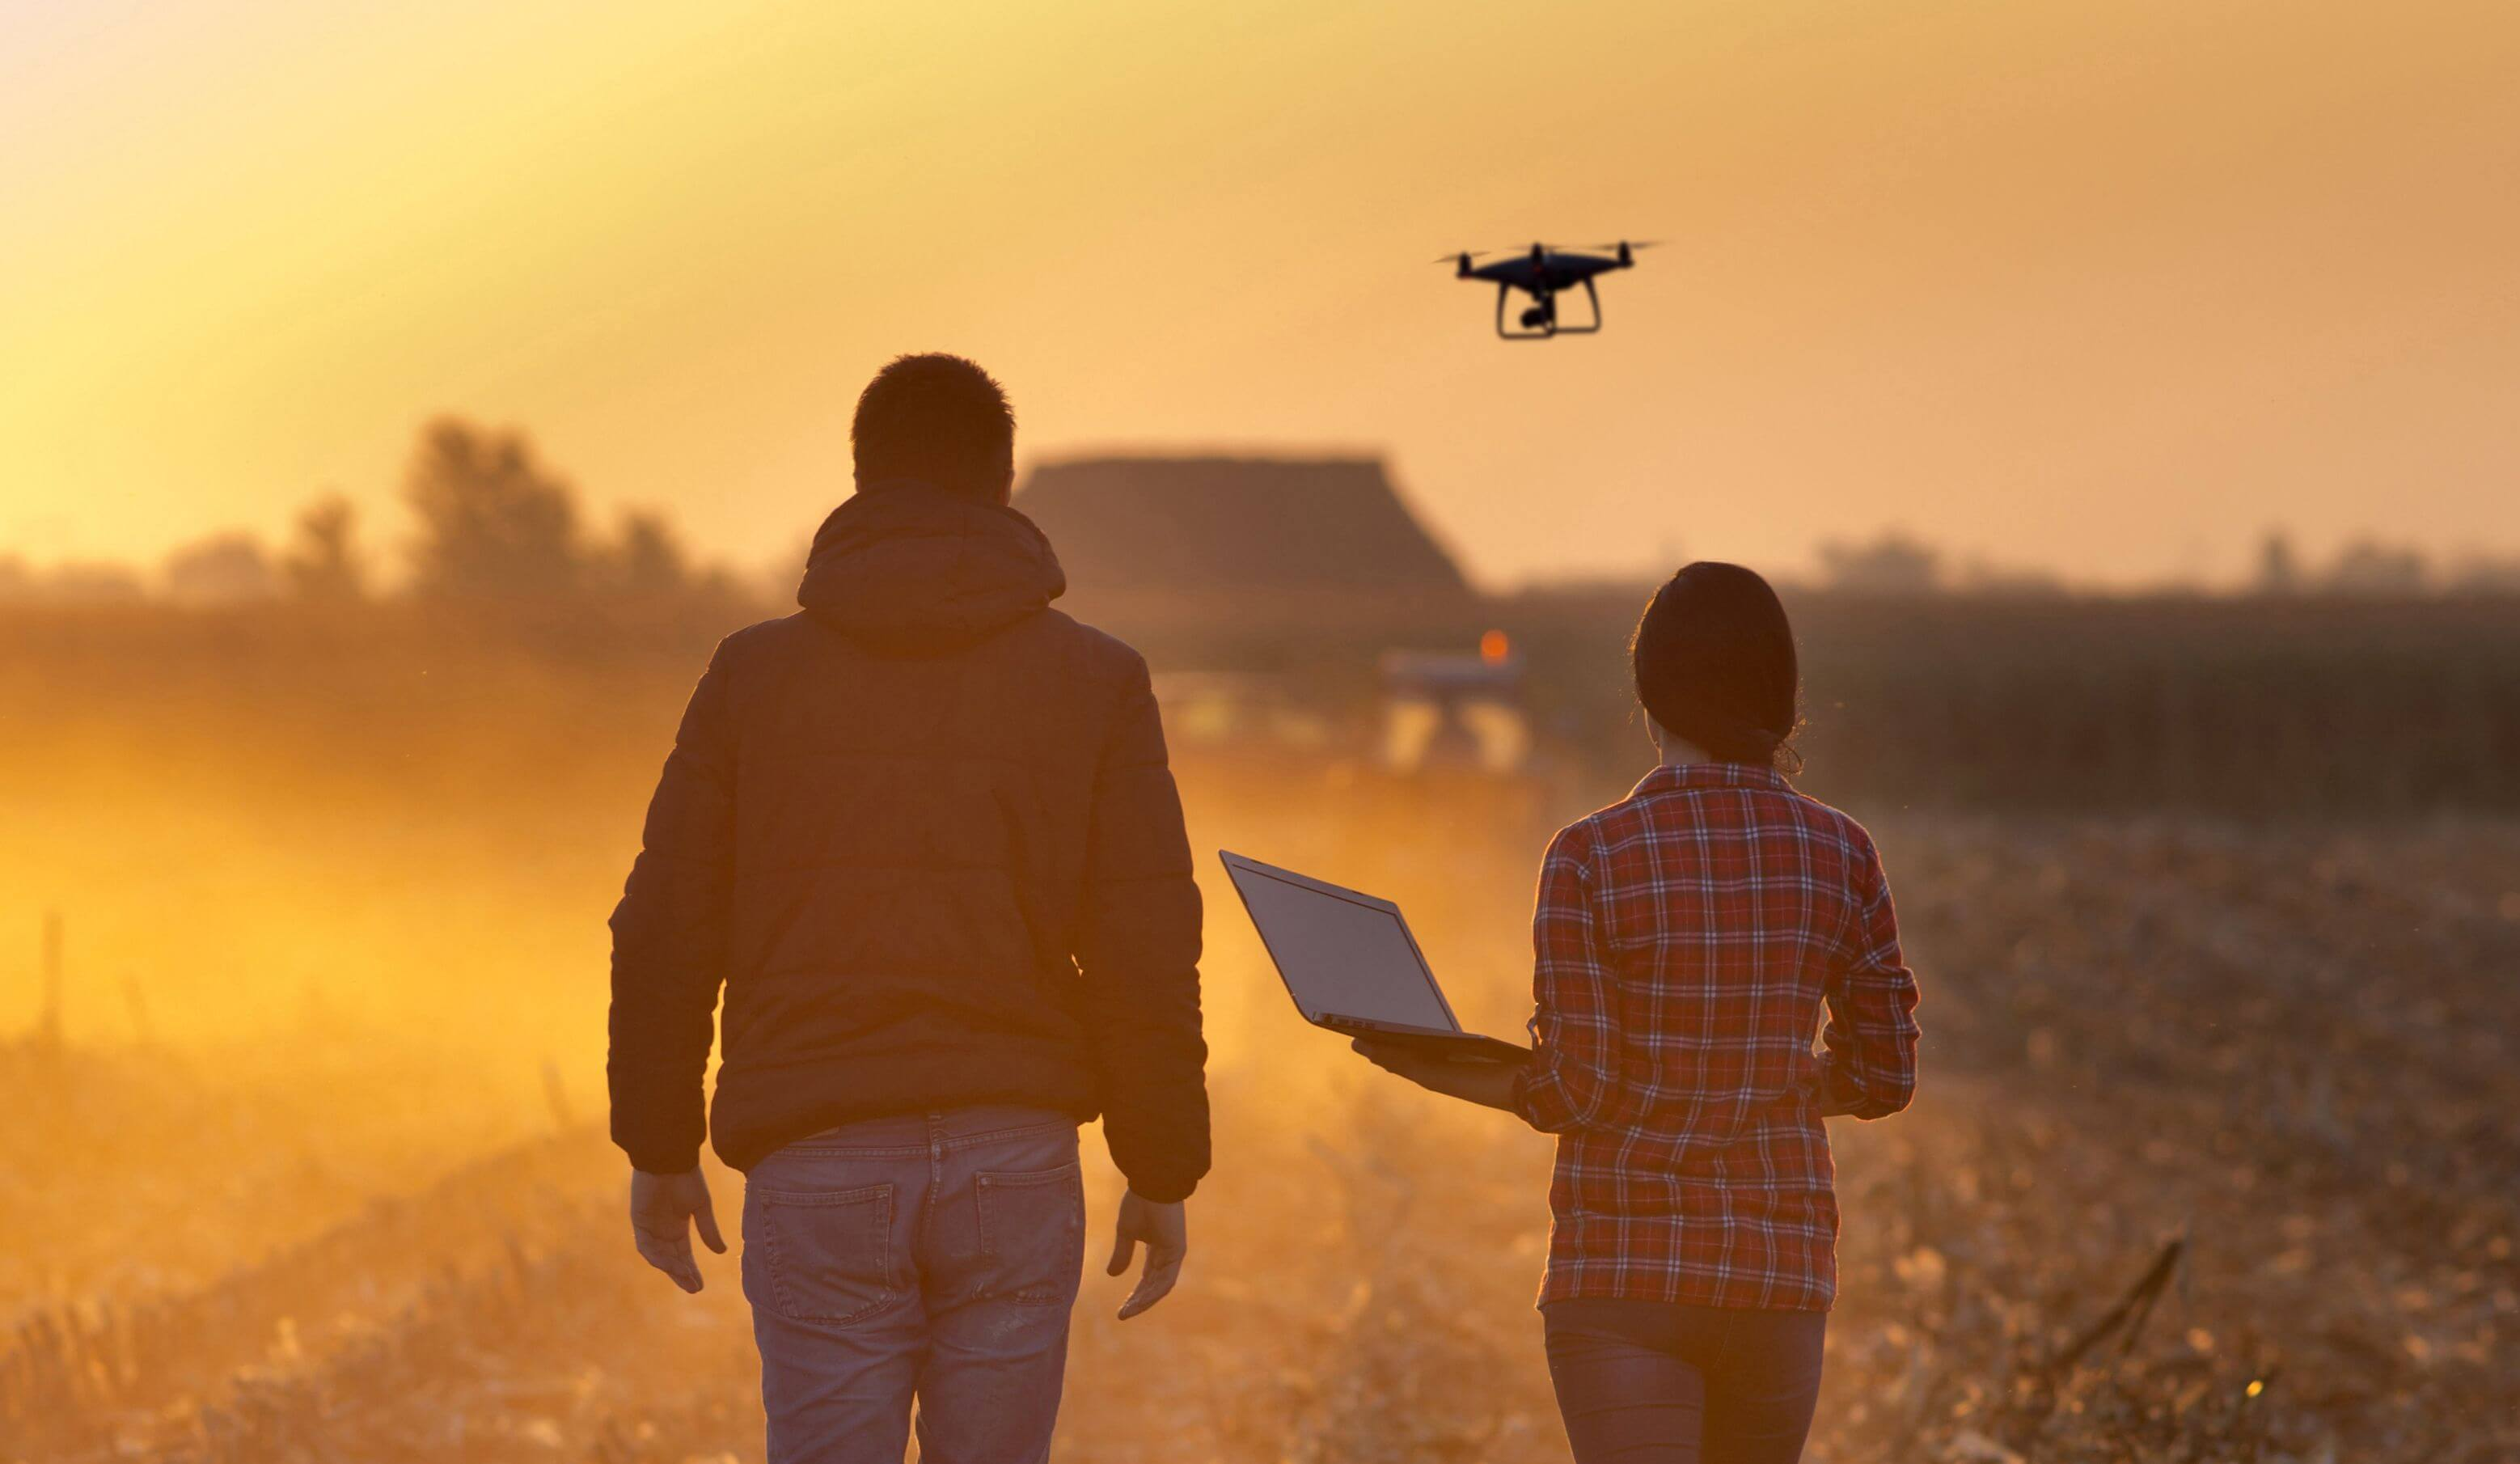 Technological Innovation in Agriculture: Combining IoT and